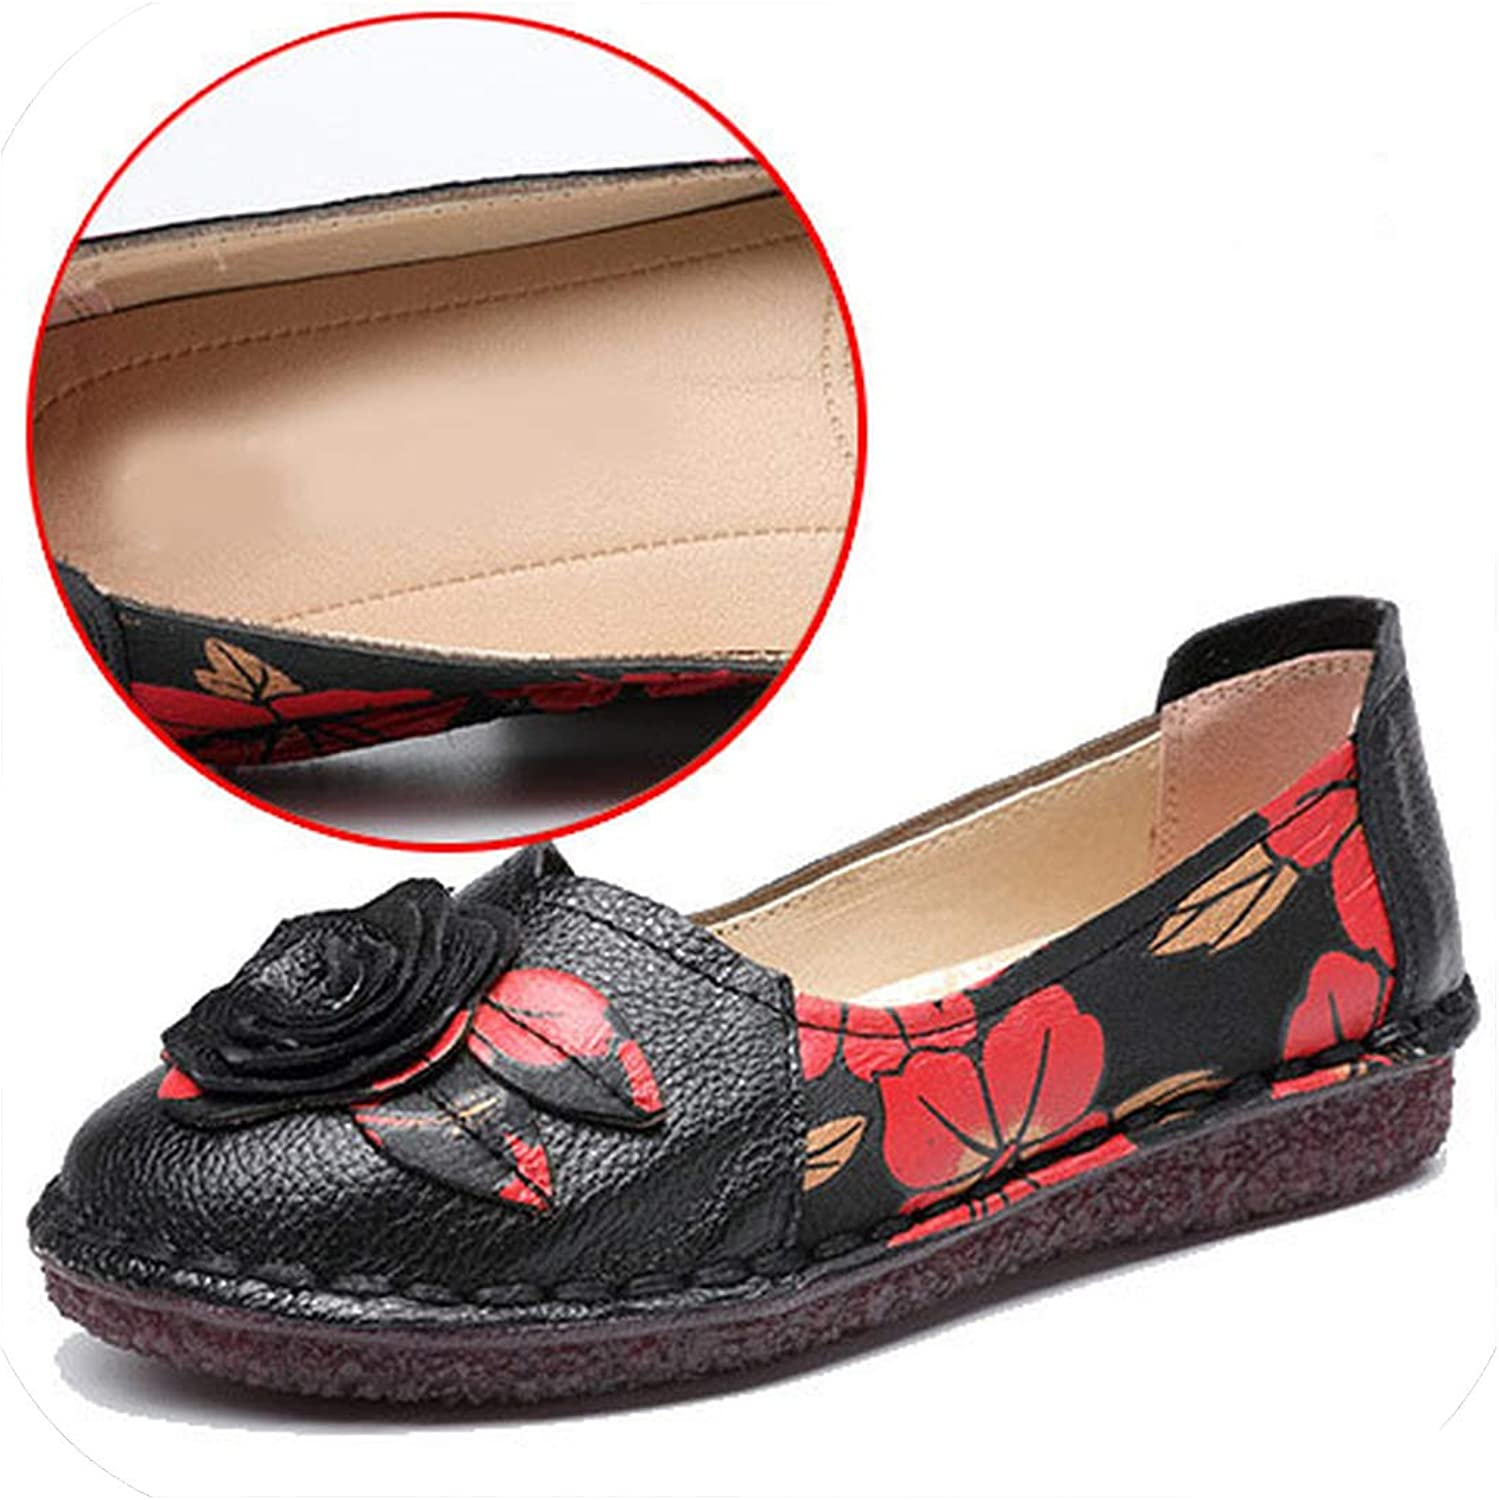 Baixa Warm Genuine Leather shoes Winter Women Ballet Flats Loafers Winter Ladies Slip On Flat shoes bluee Black shoes women